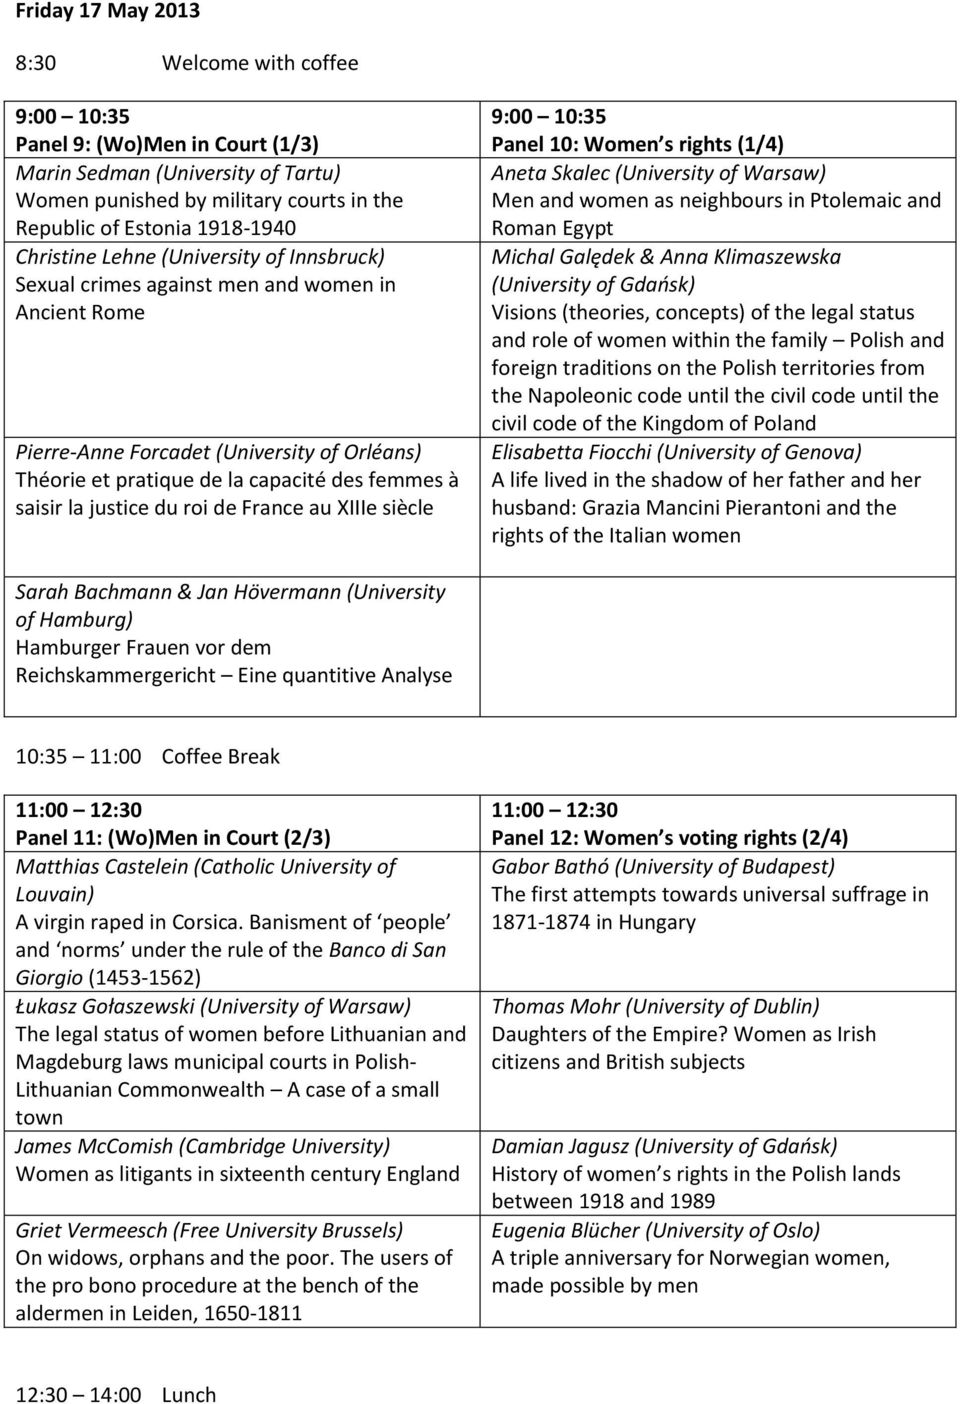 justice du roi de France au XIIIe siècle 9:00 10:35 Panel 10: Women s rights (1/4) Aneta Skalec (University of Warsaw) Men and women as neighbours in Ptolemaic and Roman Egypt Michal Galędek & Anna